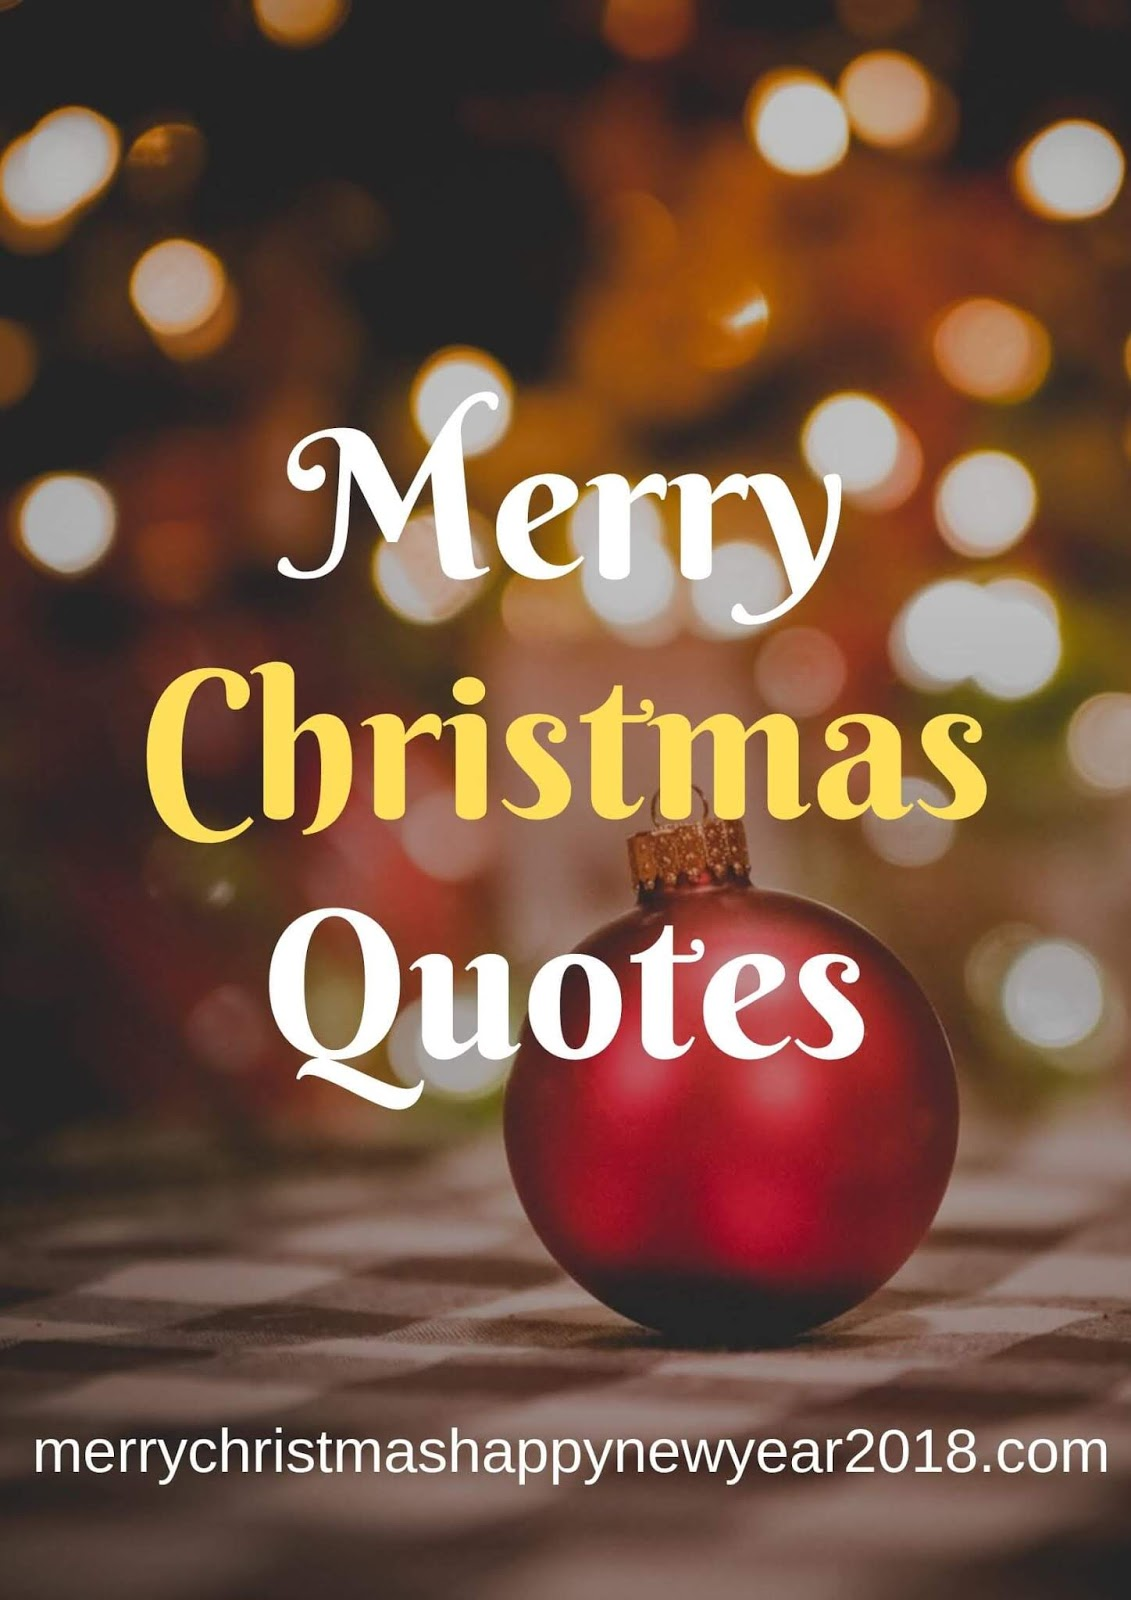 Latest] 150+ Short Merry Christmas Quotes 2019 Christmas Day ...